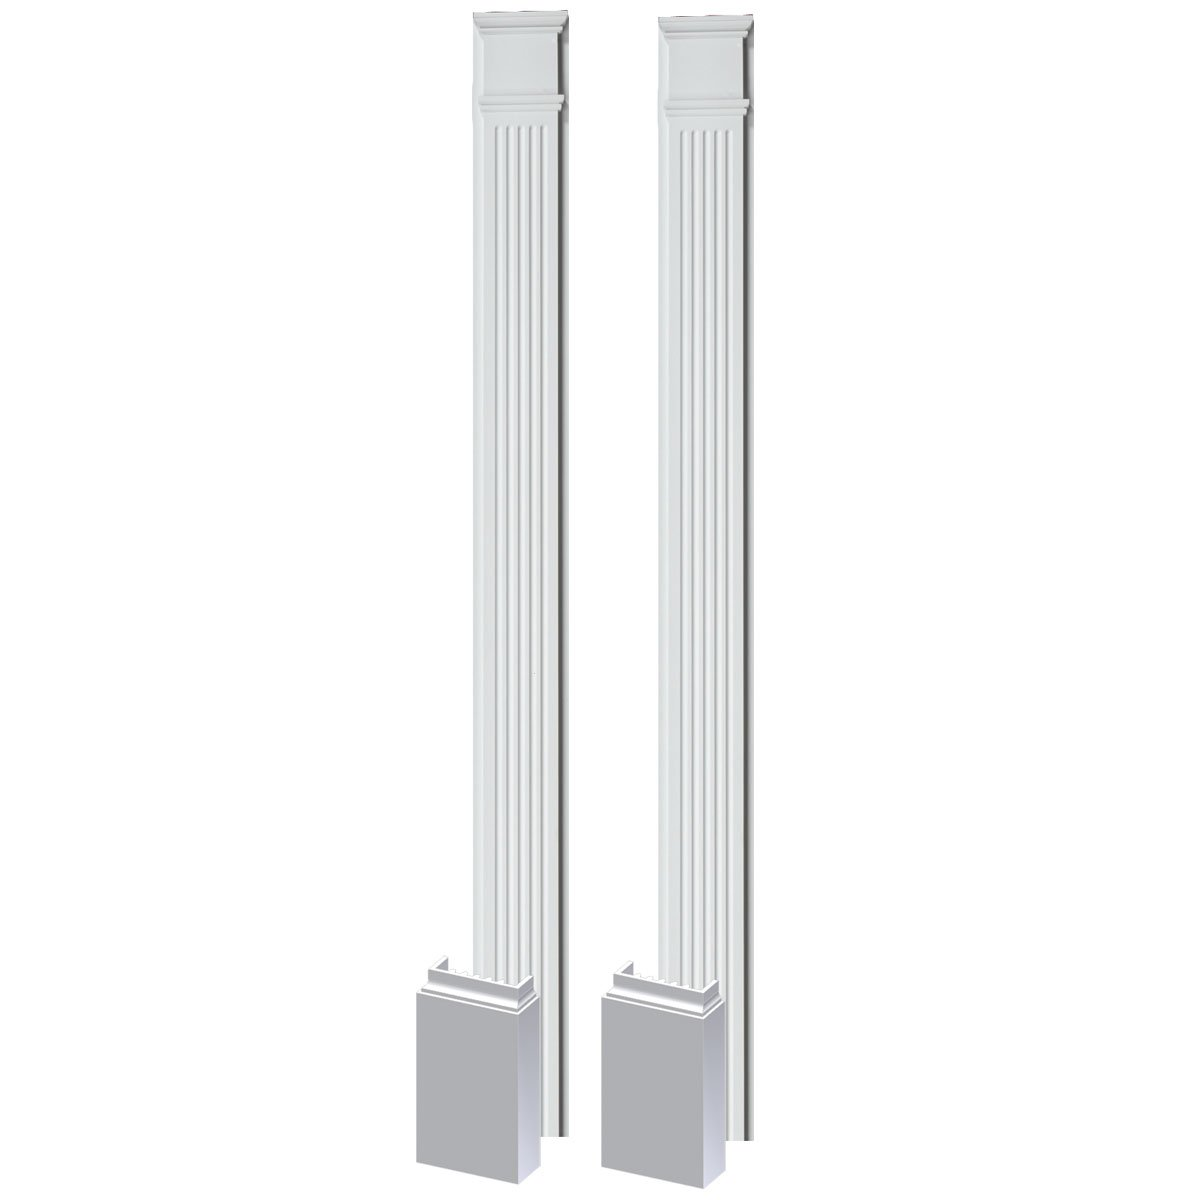 Fypon PIL7X102 7''W x 102''H x 2 1/2''P Fluted Pilaster, Moulded with Plinth Block (Set of 2), 1 Piece